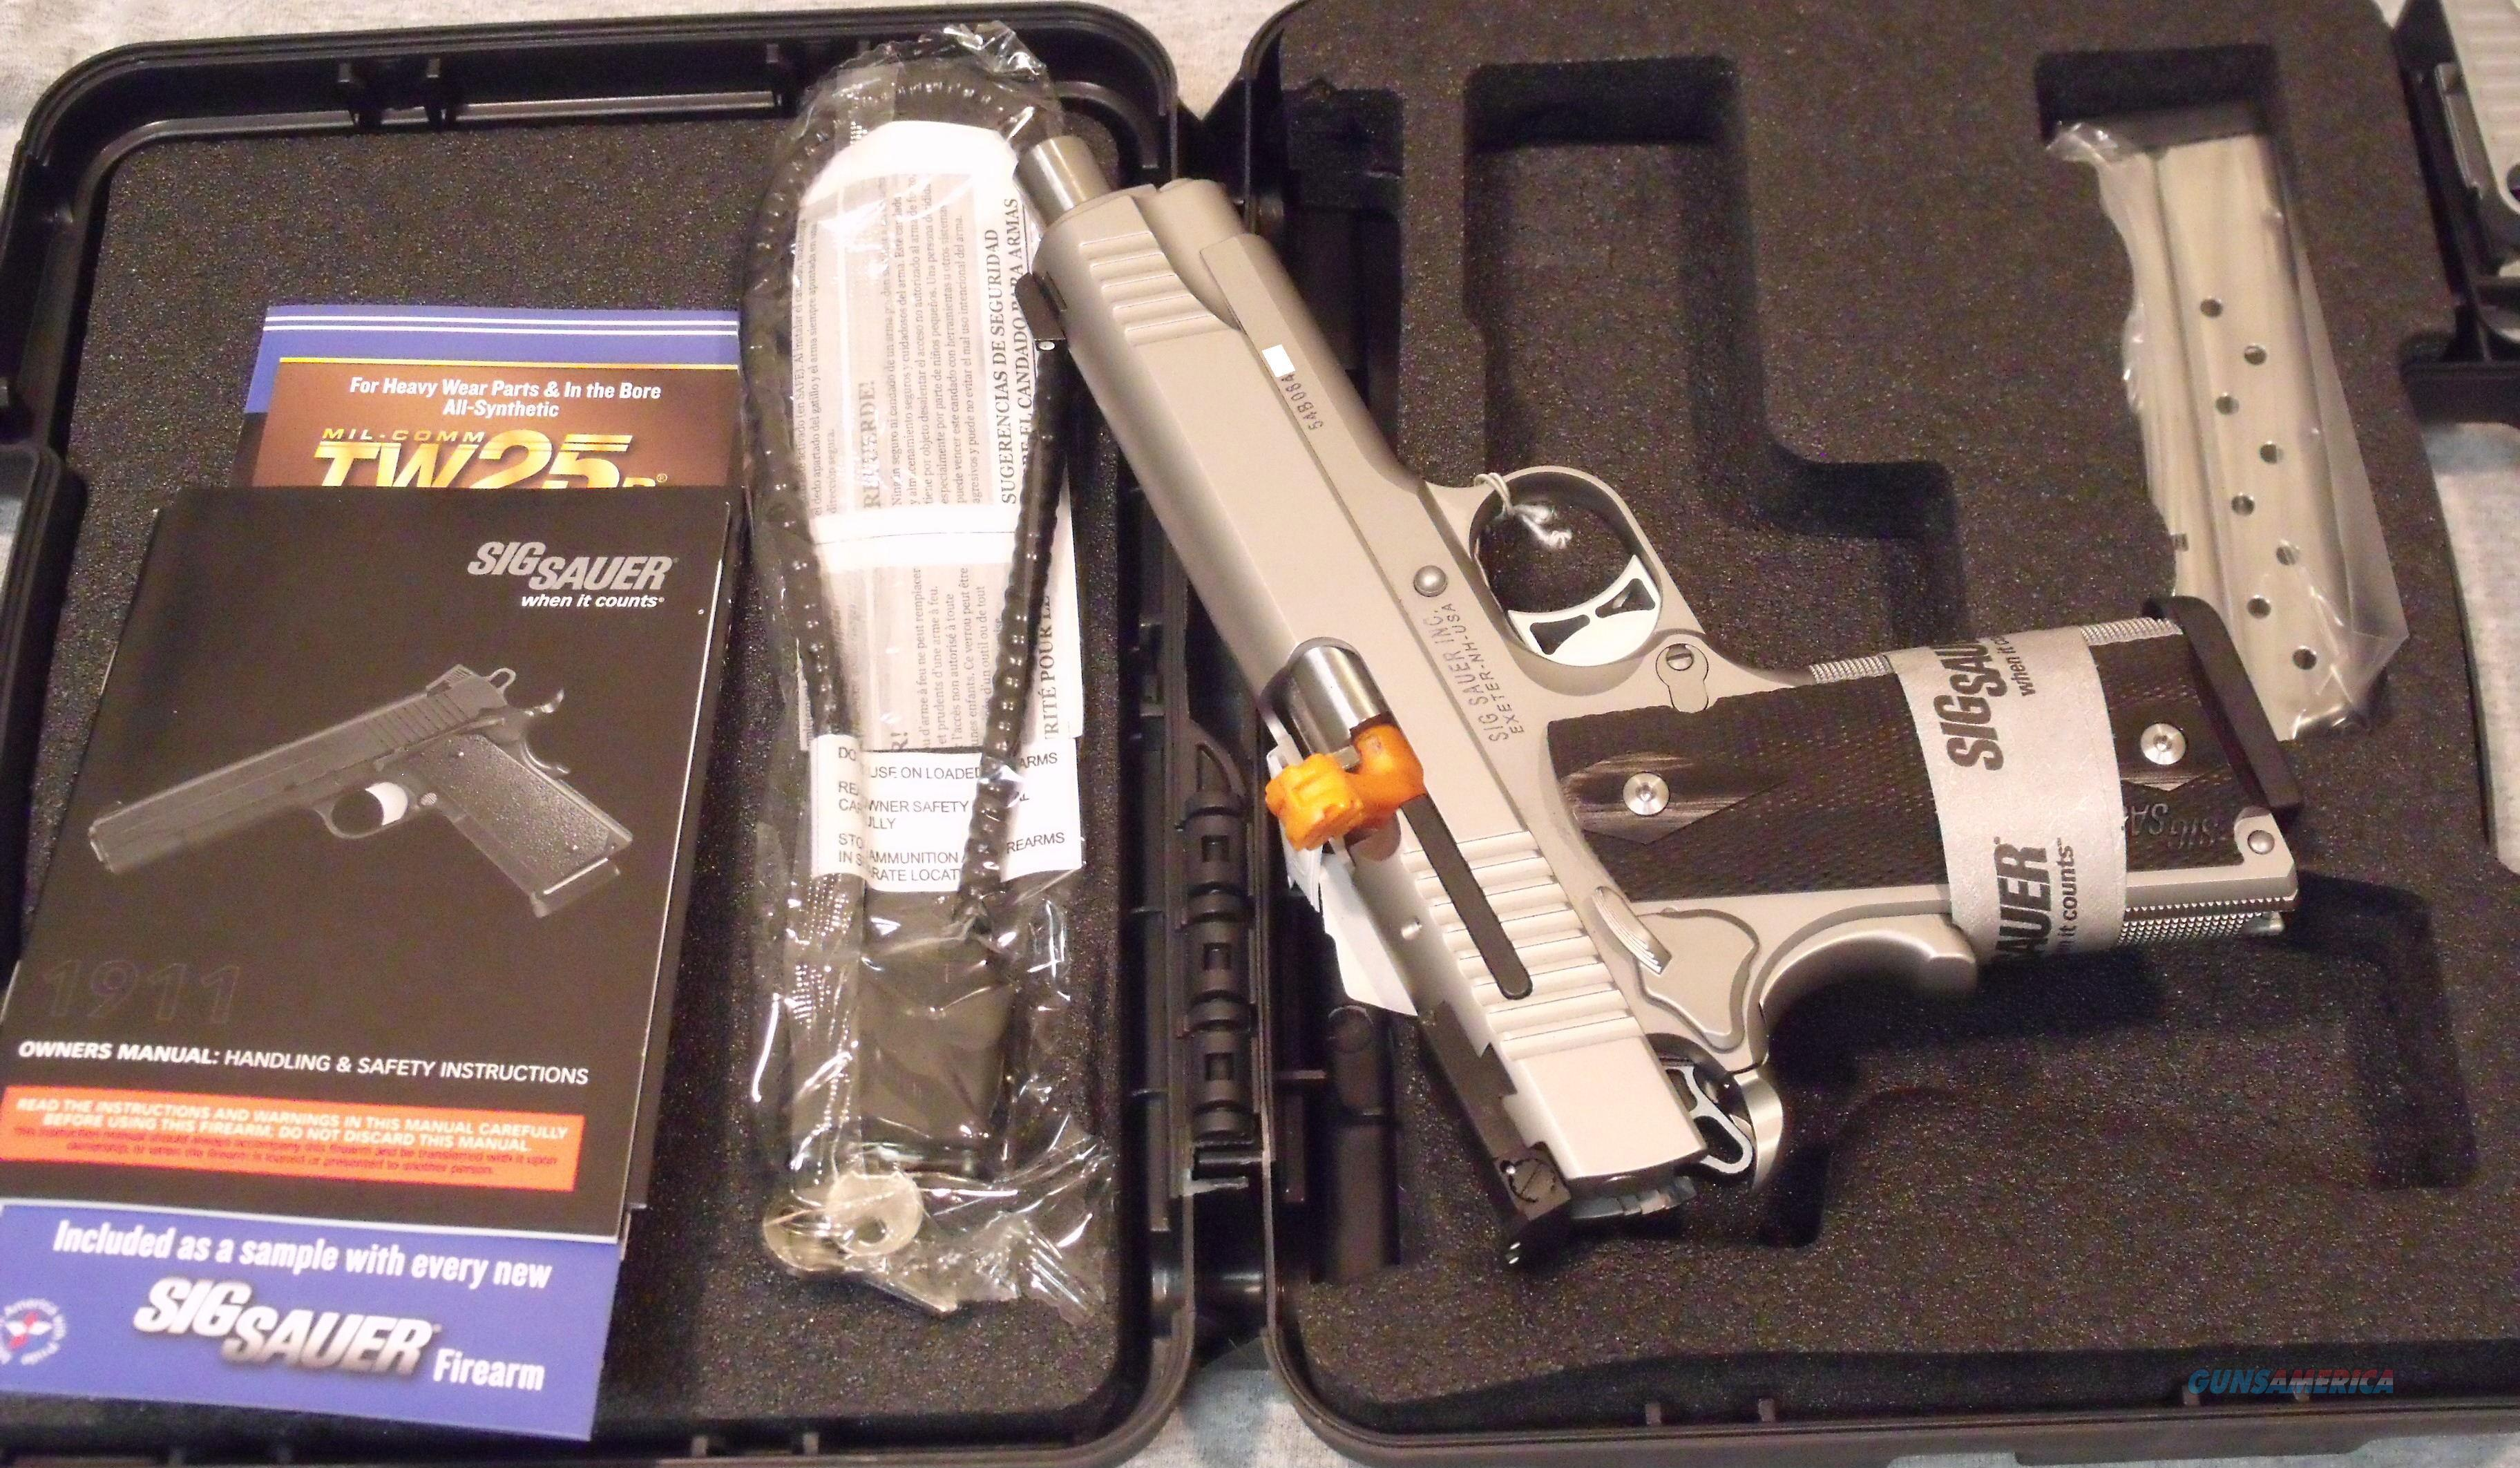 Sig Sauer 1911 9mm Luger Traditional Match Elite Stainless Factory NEW  Guns > Pistols > Sig - Sauer/Sigarms Pistols > 1911